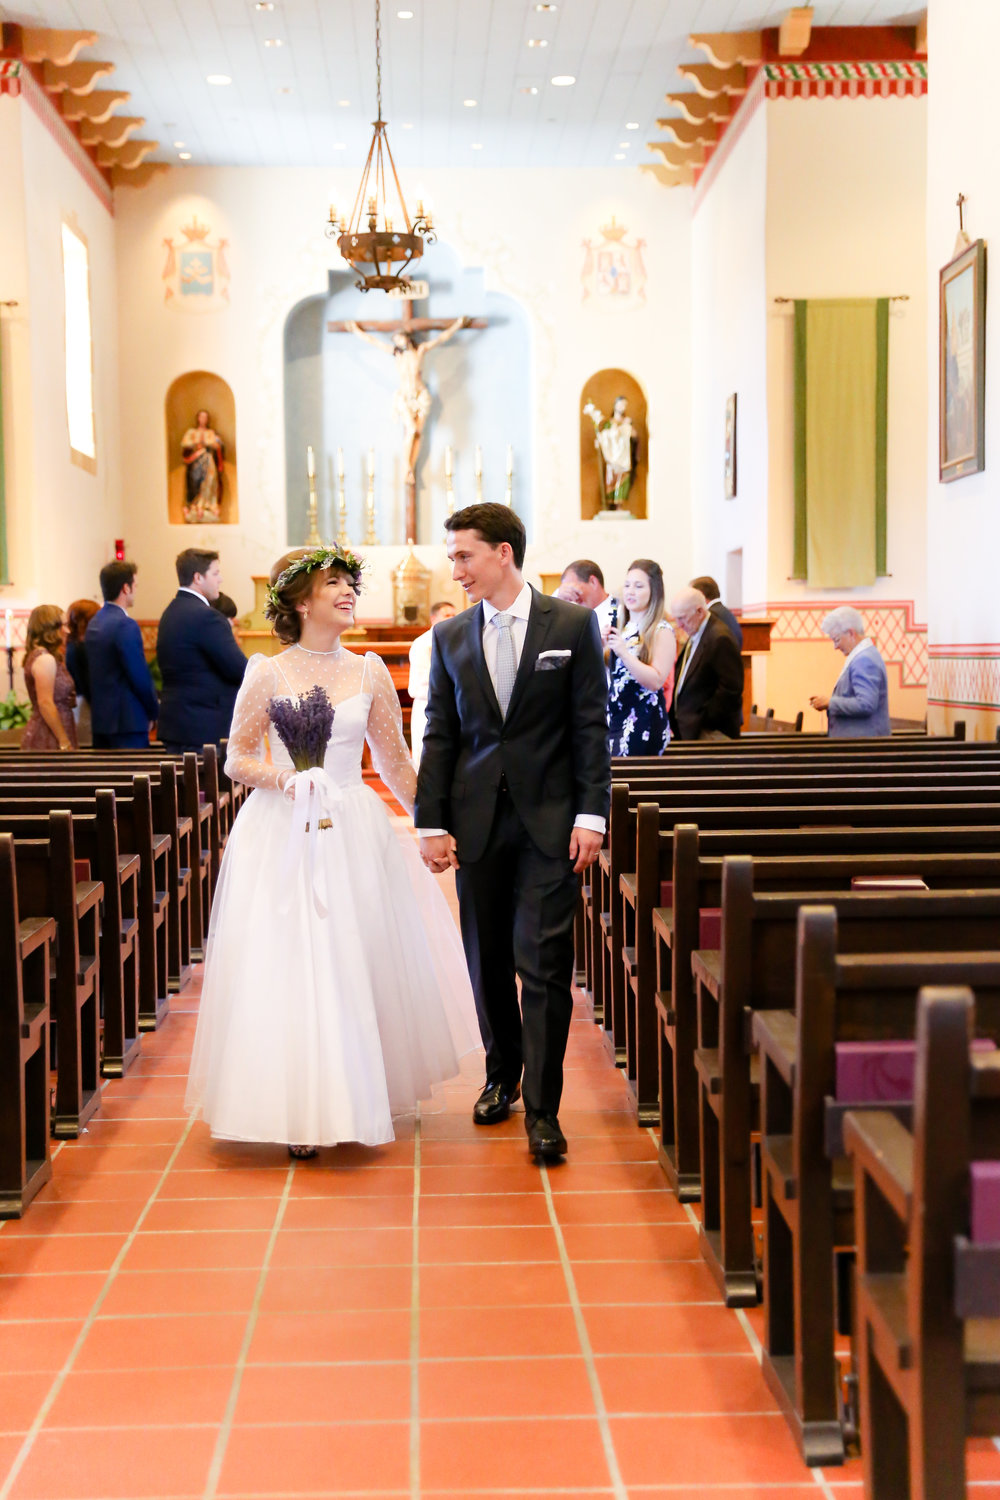 alexandra-rice-photography-monterey-wedding-bride-groom-just-married-walking-isle-san-carlos-cathedral.jpg